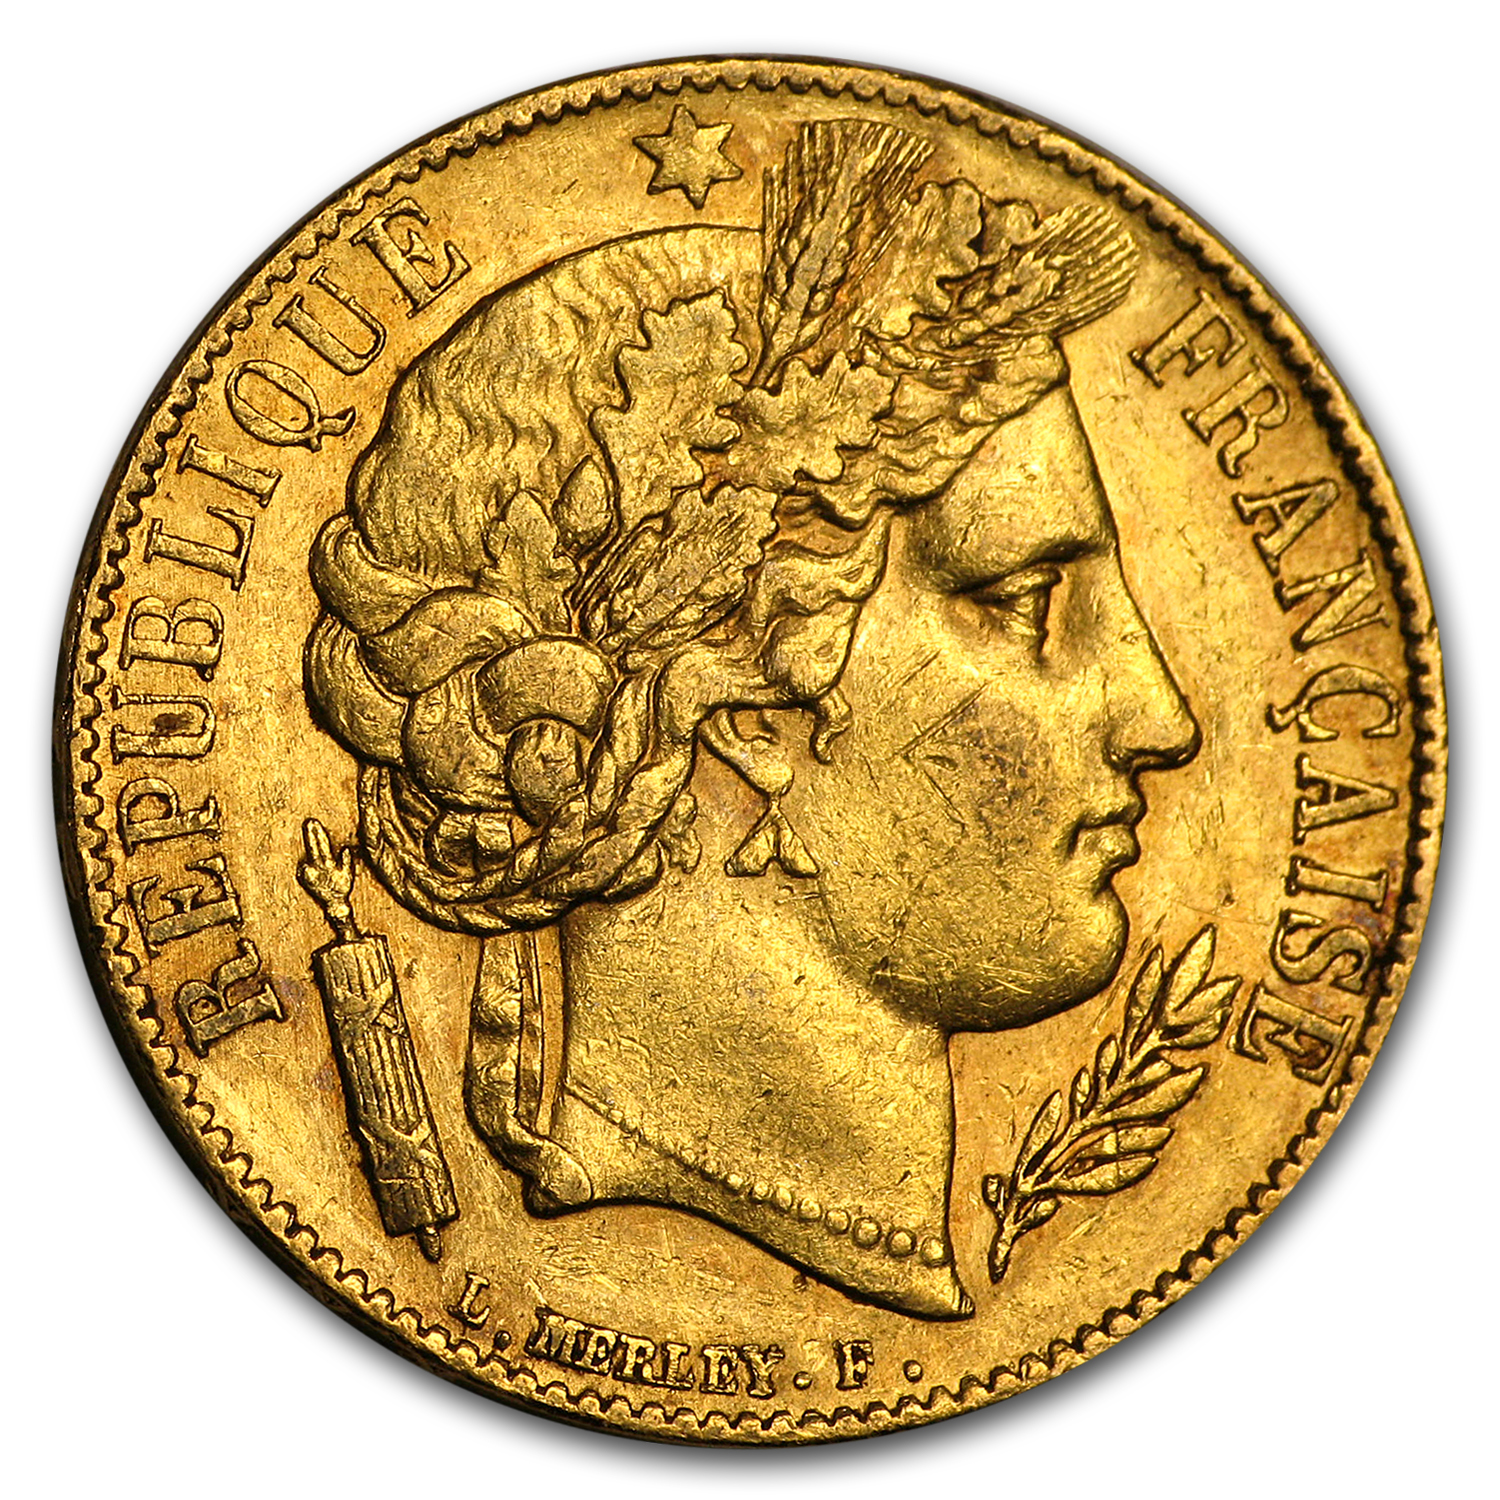 France 1851-A 20 Francs Gold Coin Uncirculated